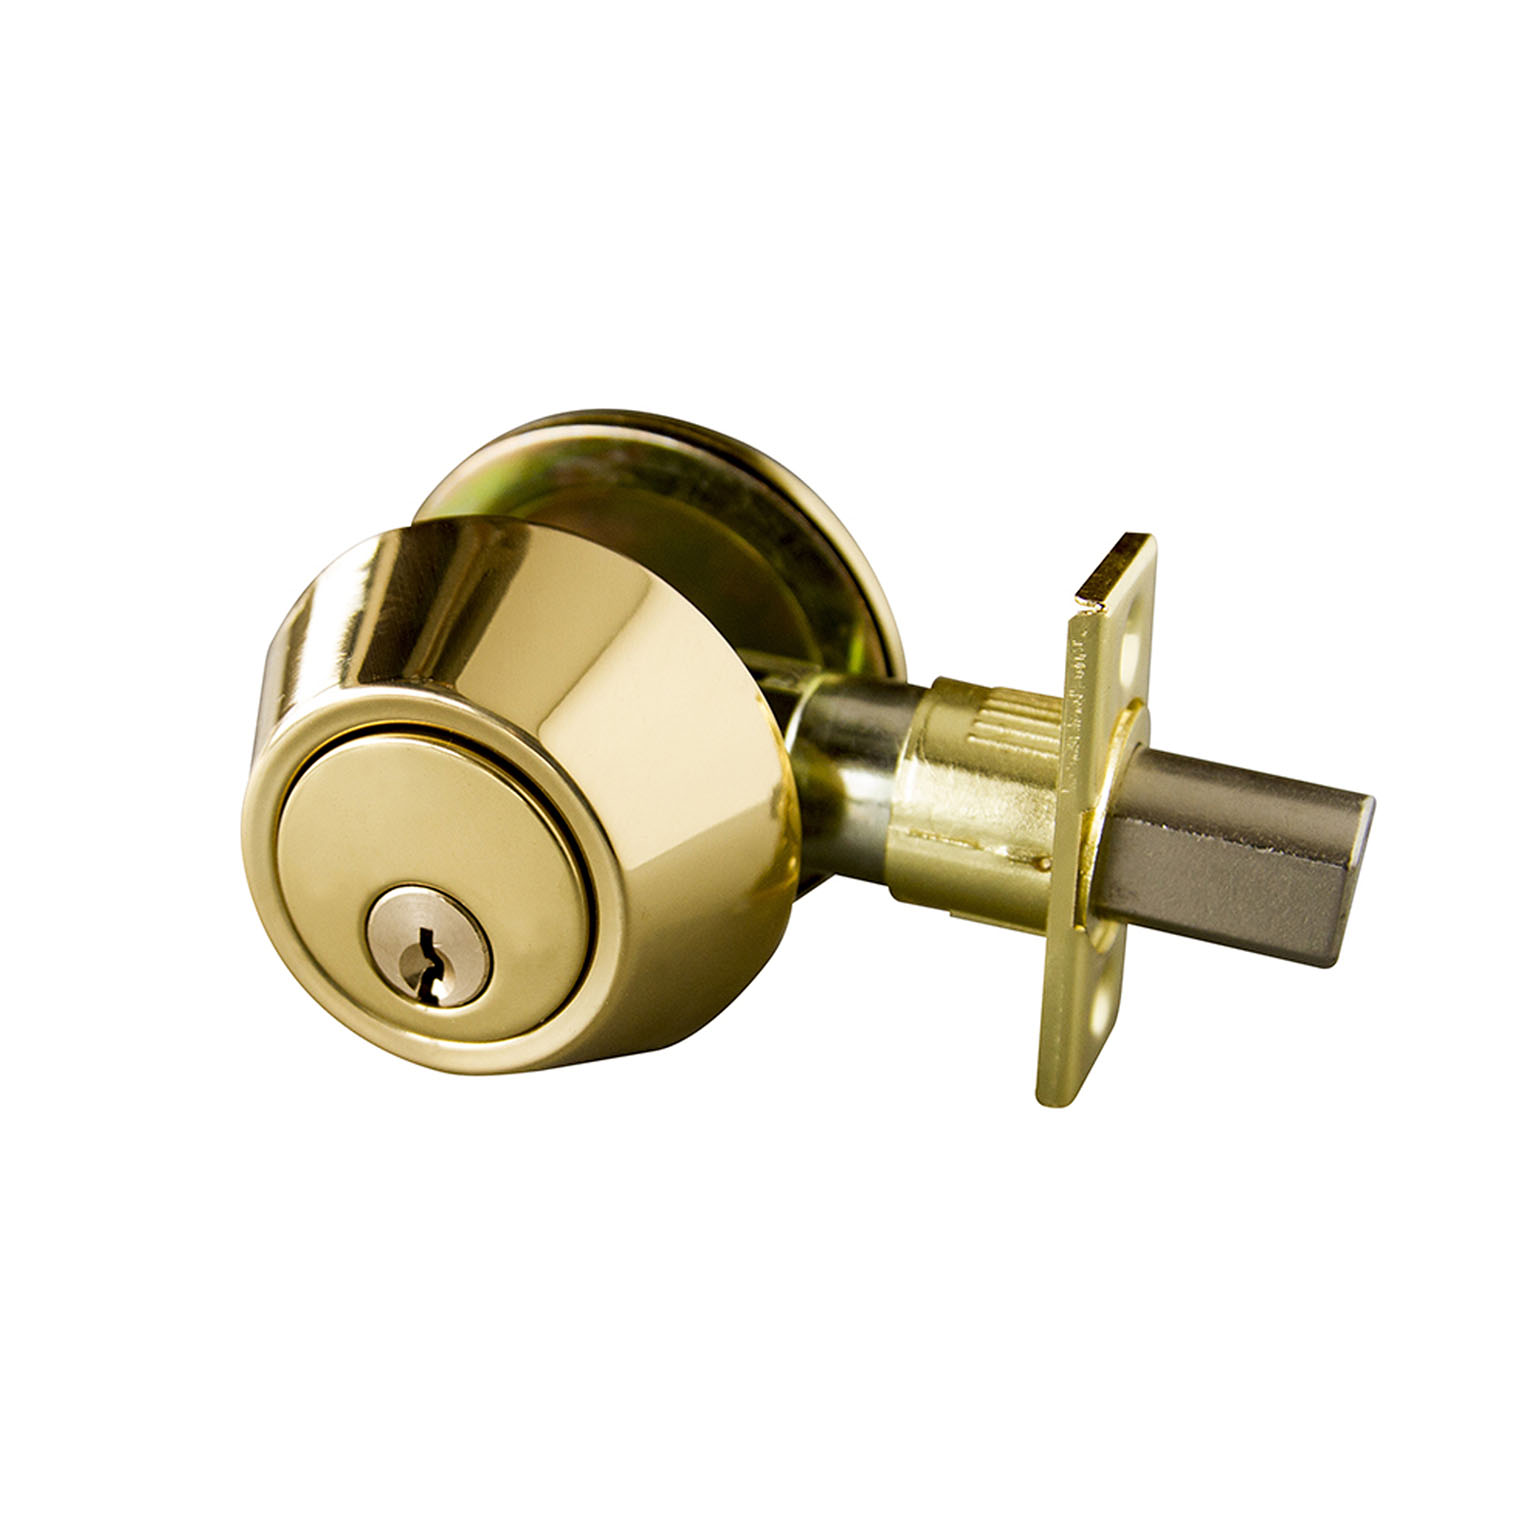 Design House Single Cylinder Deadbolt, Polished Brass - 727438